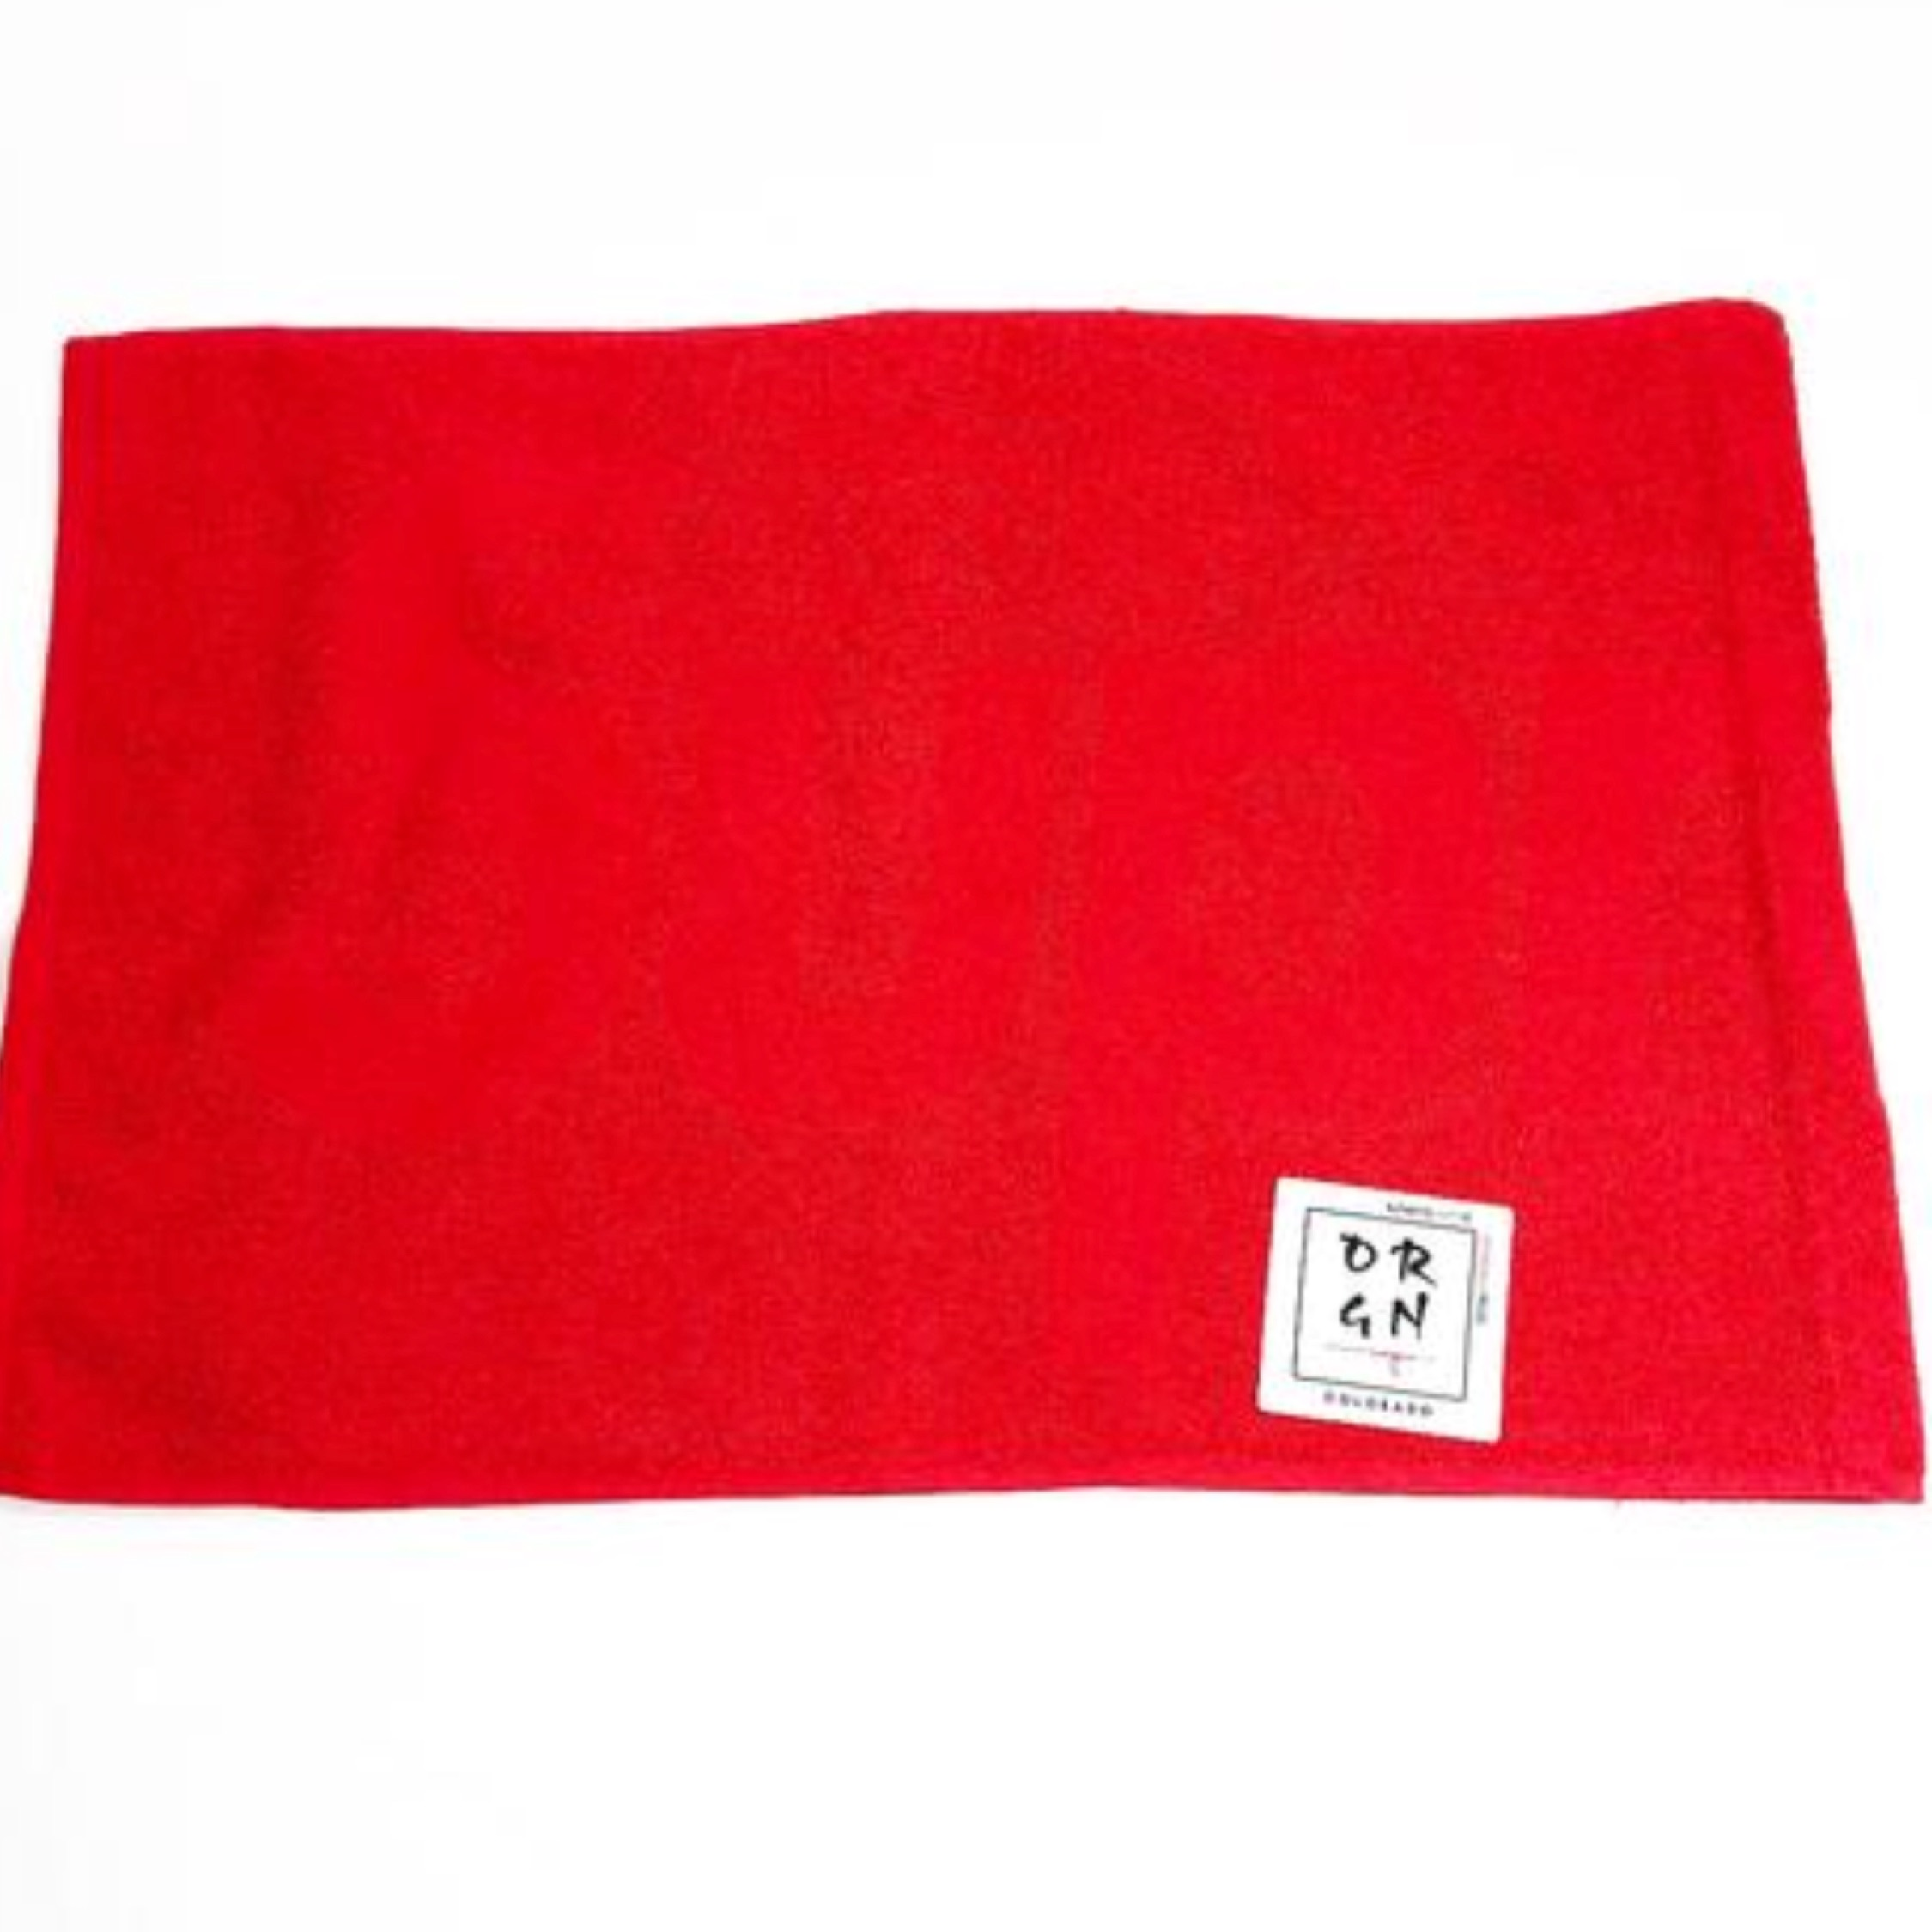 Supreme Terry Hand Towel Red New